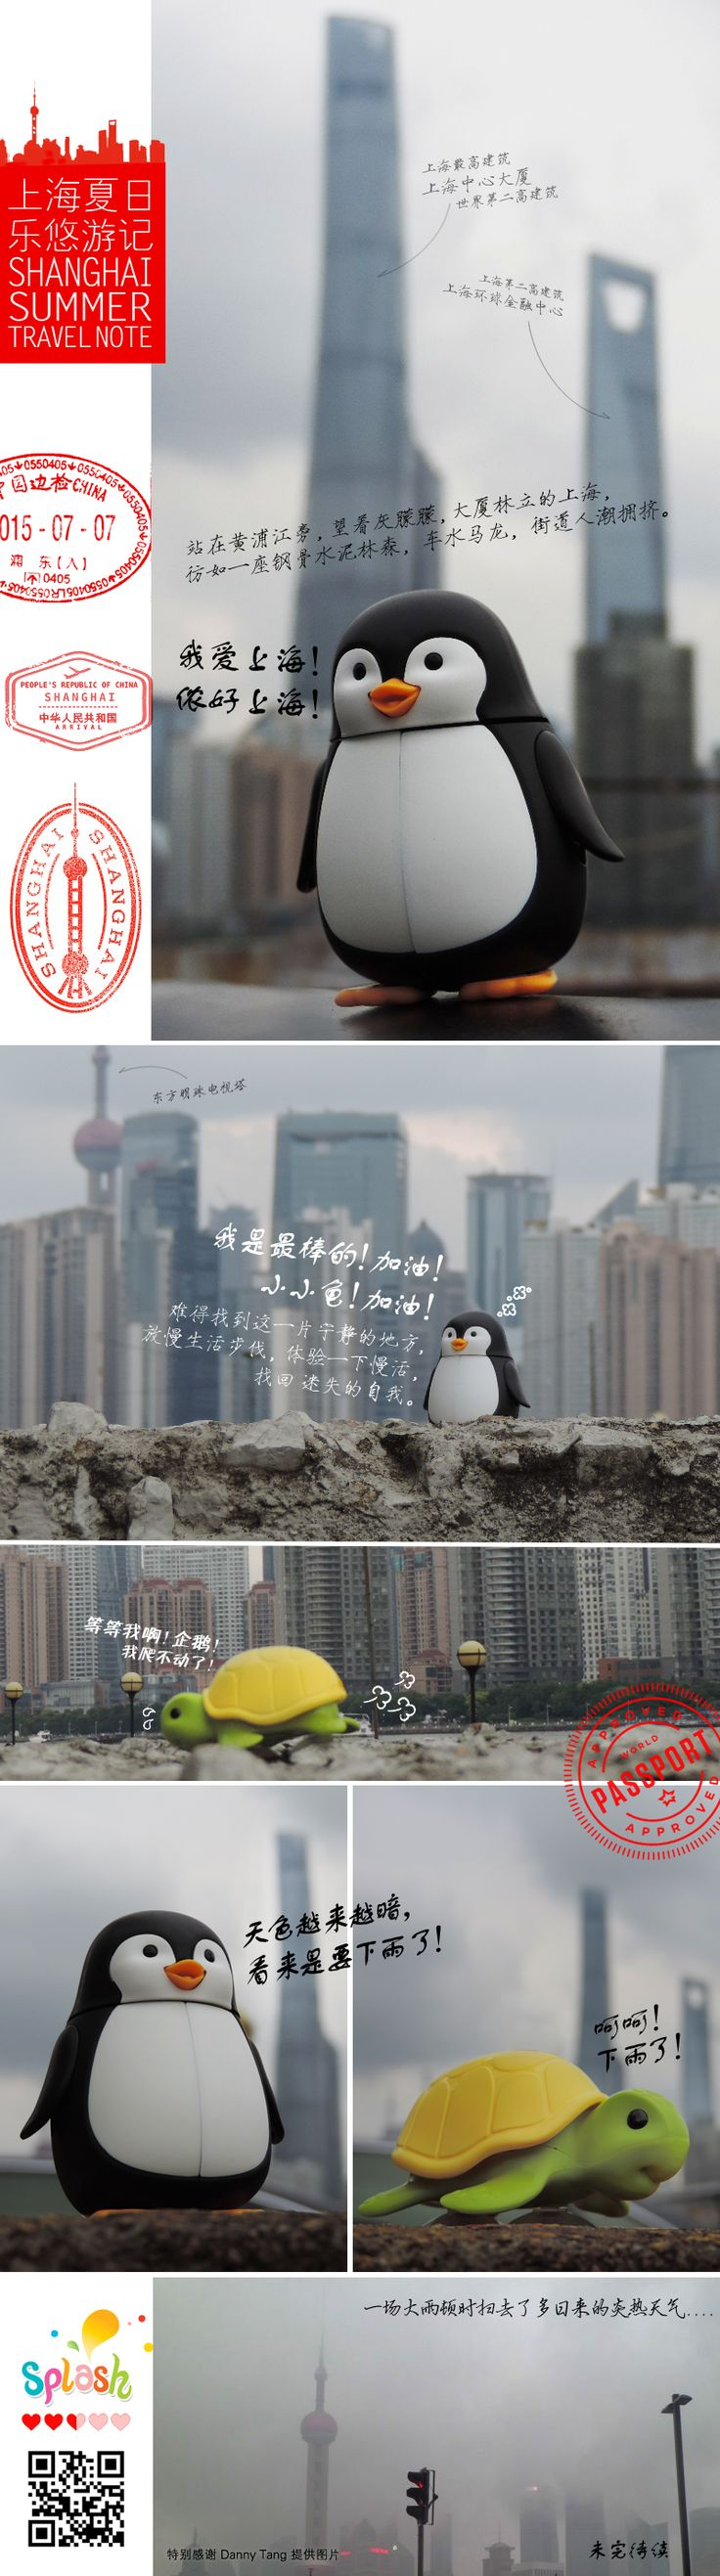 Penguin and Turtle went to Shanghai and traveled in the summer, it is the largest Chinese city by population, Penguin stood by the bank of the HuangPu river and looked at the hazy Shanghai skyline, it's like a concrete forest, the traffic was so heavy and the crowd so dense, finally the penguin and turtle found a quiet place to slow down the pace of life, experience of downshifting, finding their inner self. The sky was so dark, the rain came pouring down and sweeping the heat away...